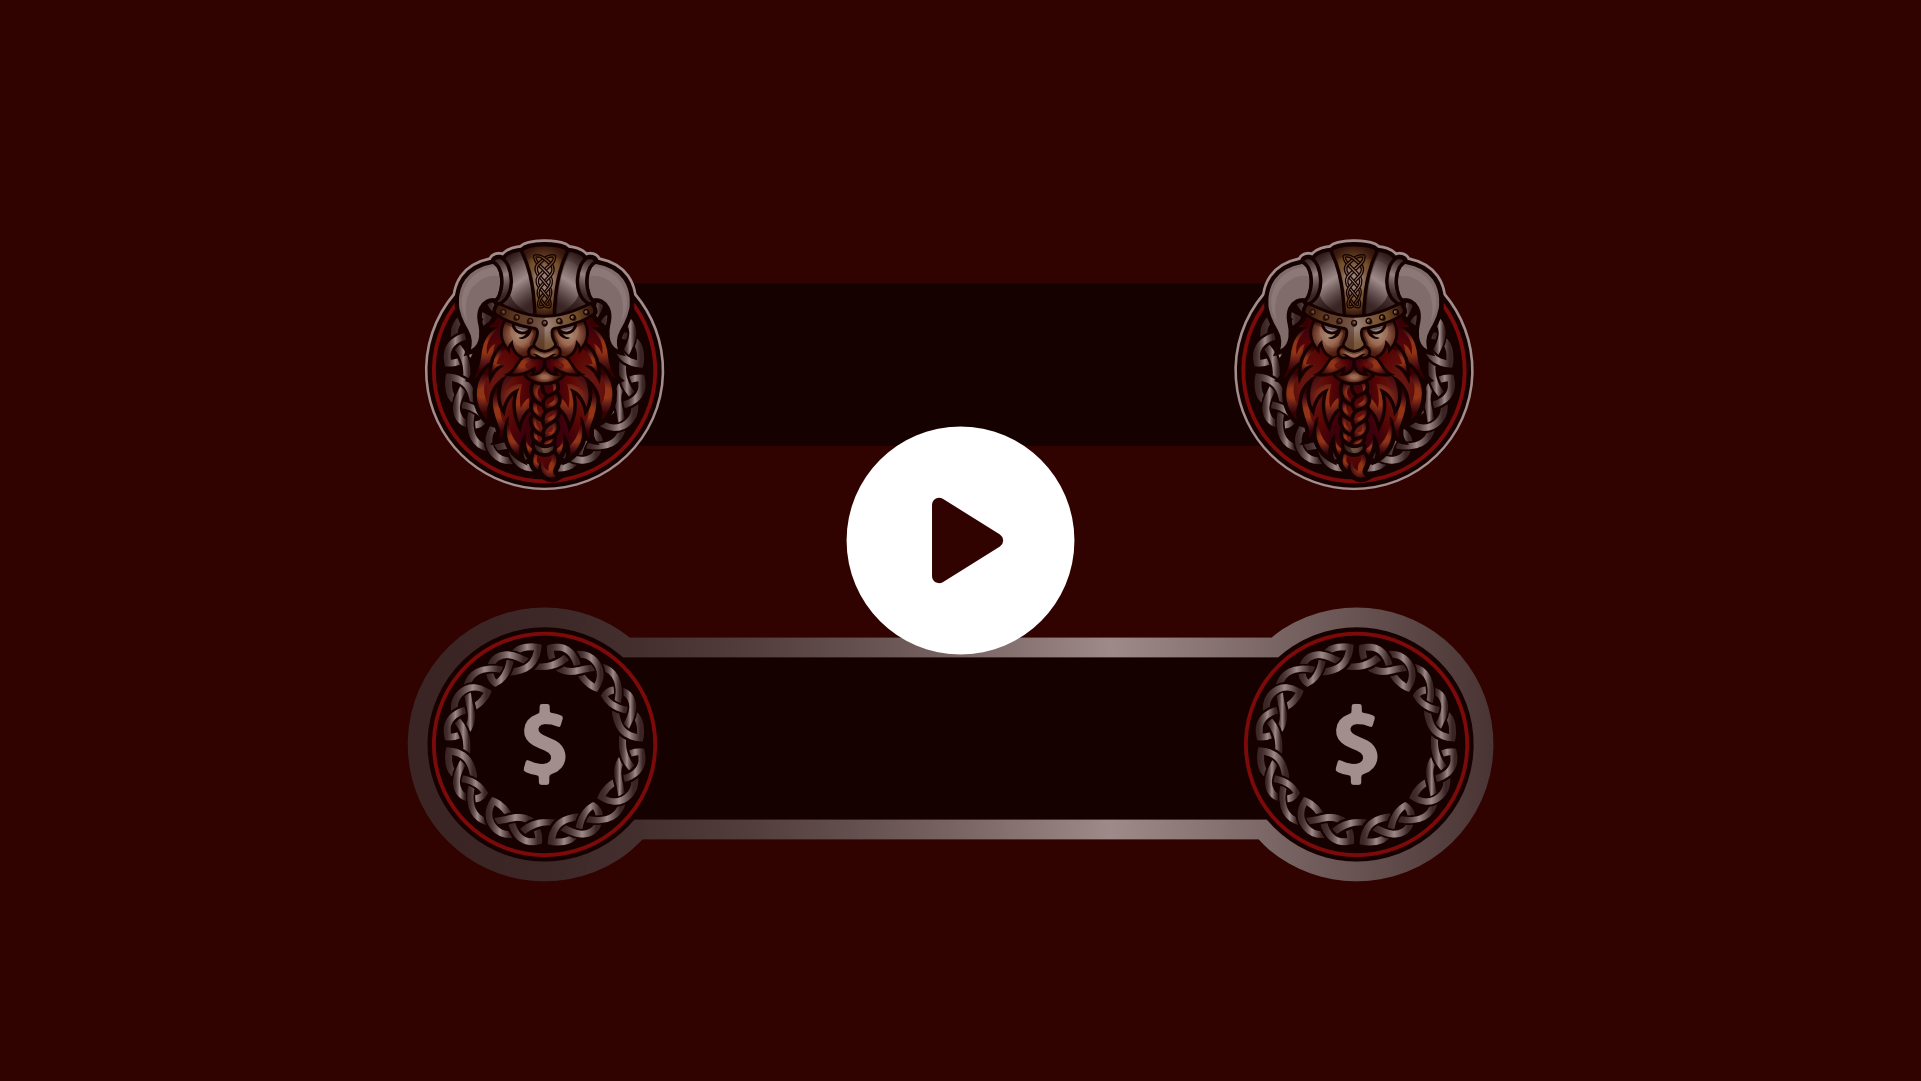 Viking themed twitch alerts using the customers logo